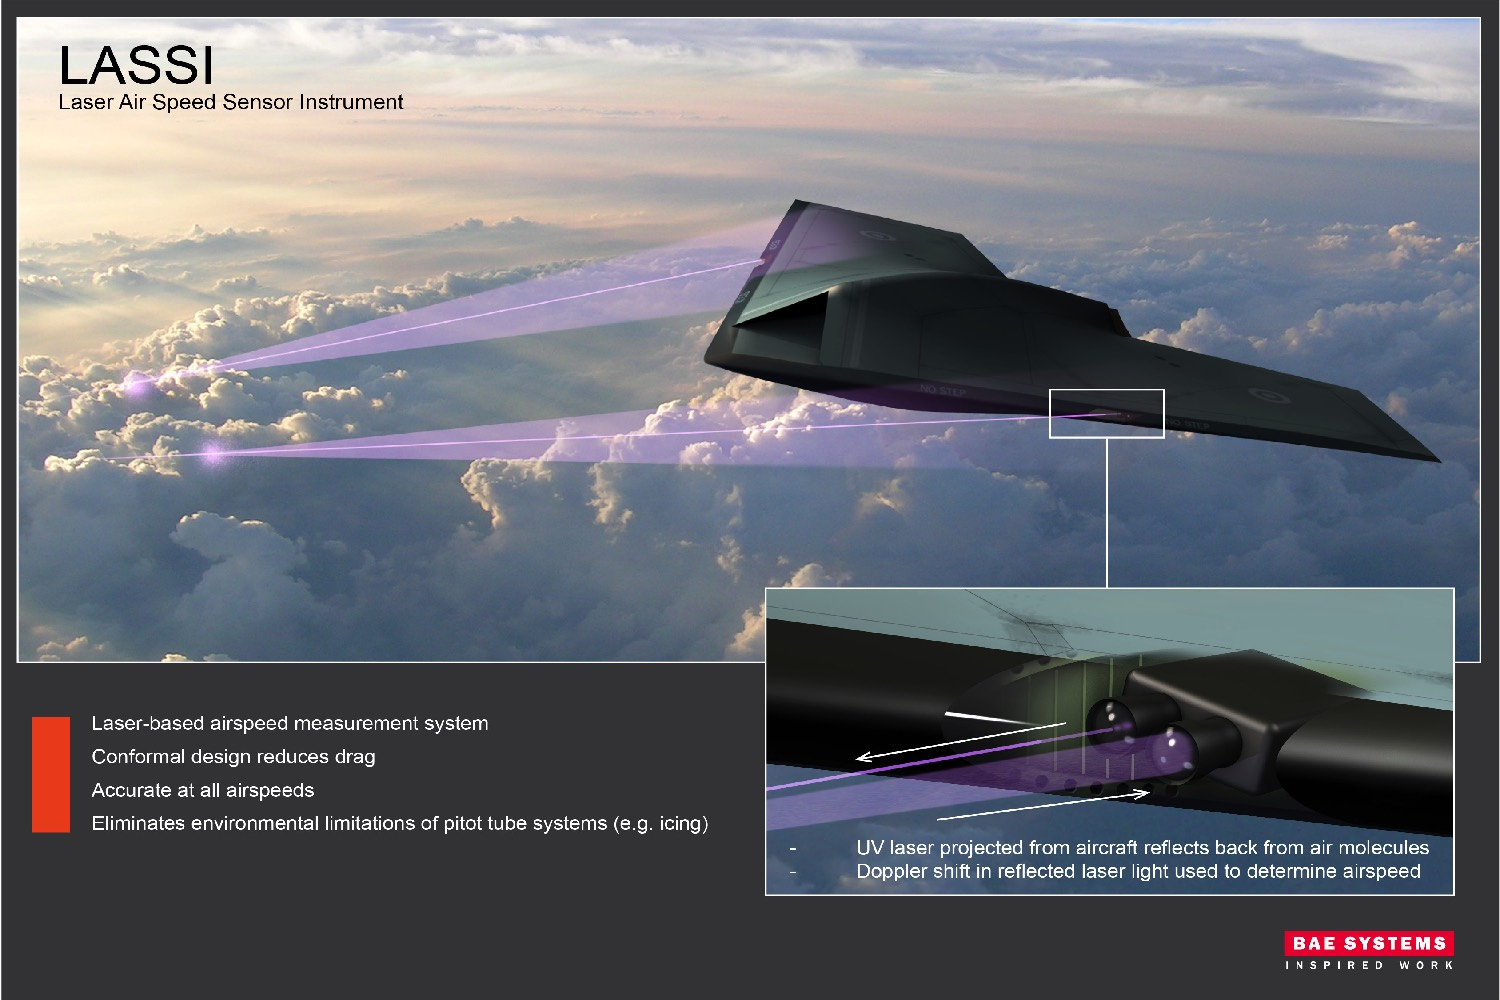 Frontier Speed Test >> BAE Systems built a crazy new UV laser sensor that could change how aircraft measure airspeed